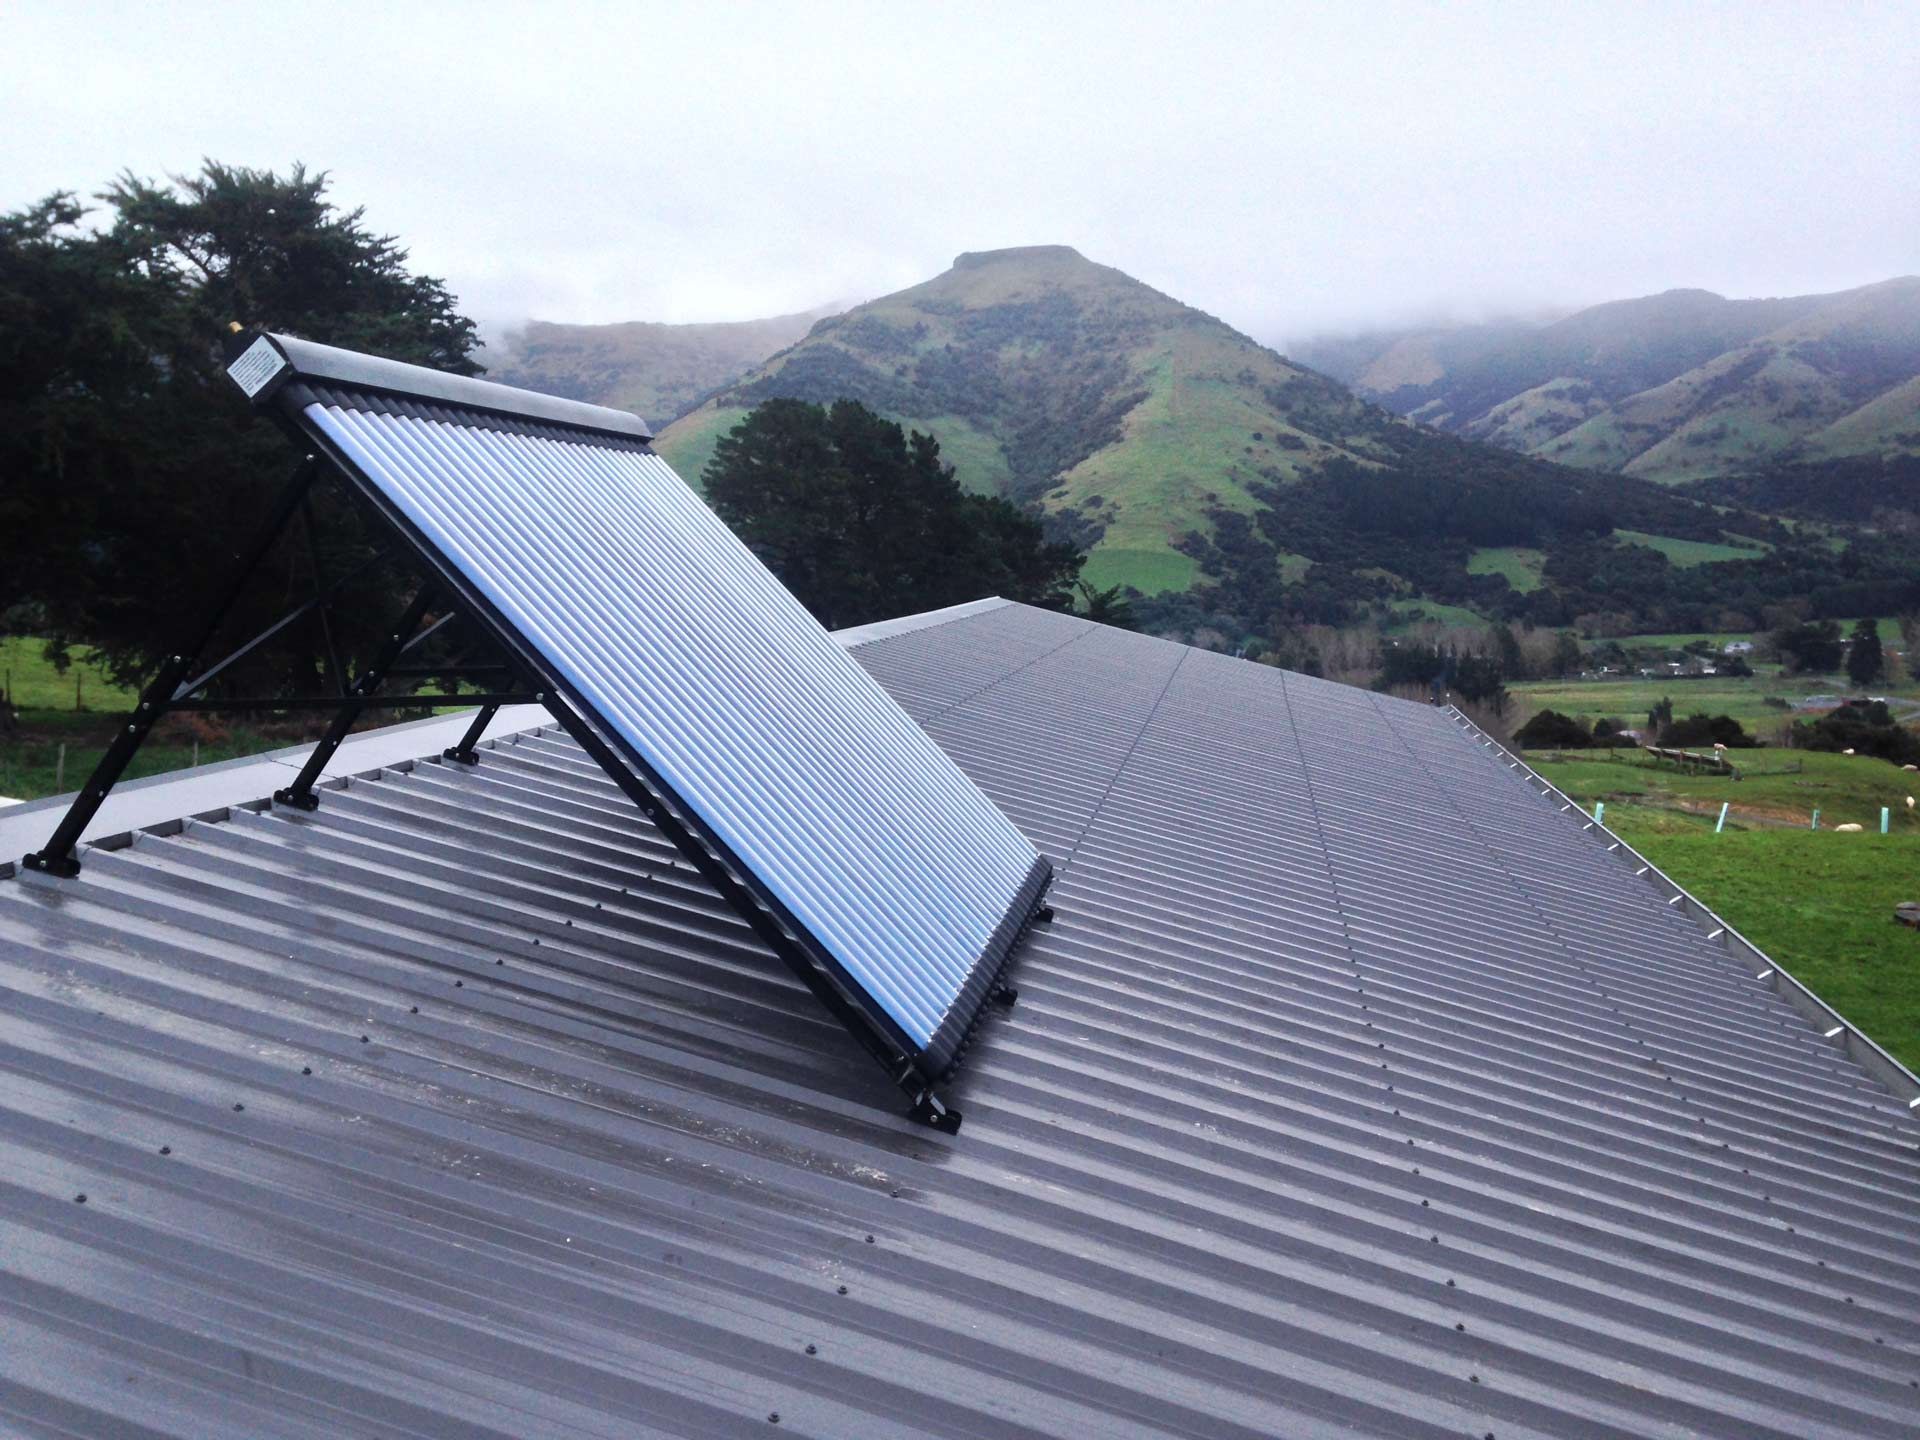 solar panel on an upstanding overlooking fields and hills